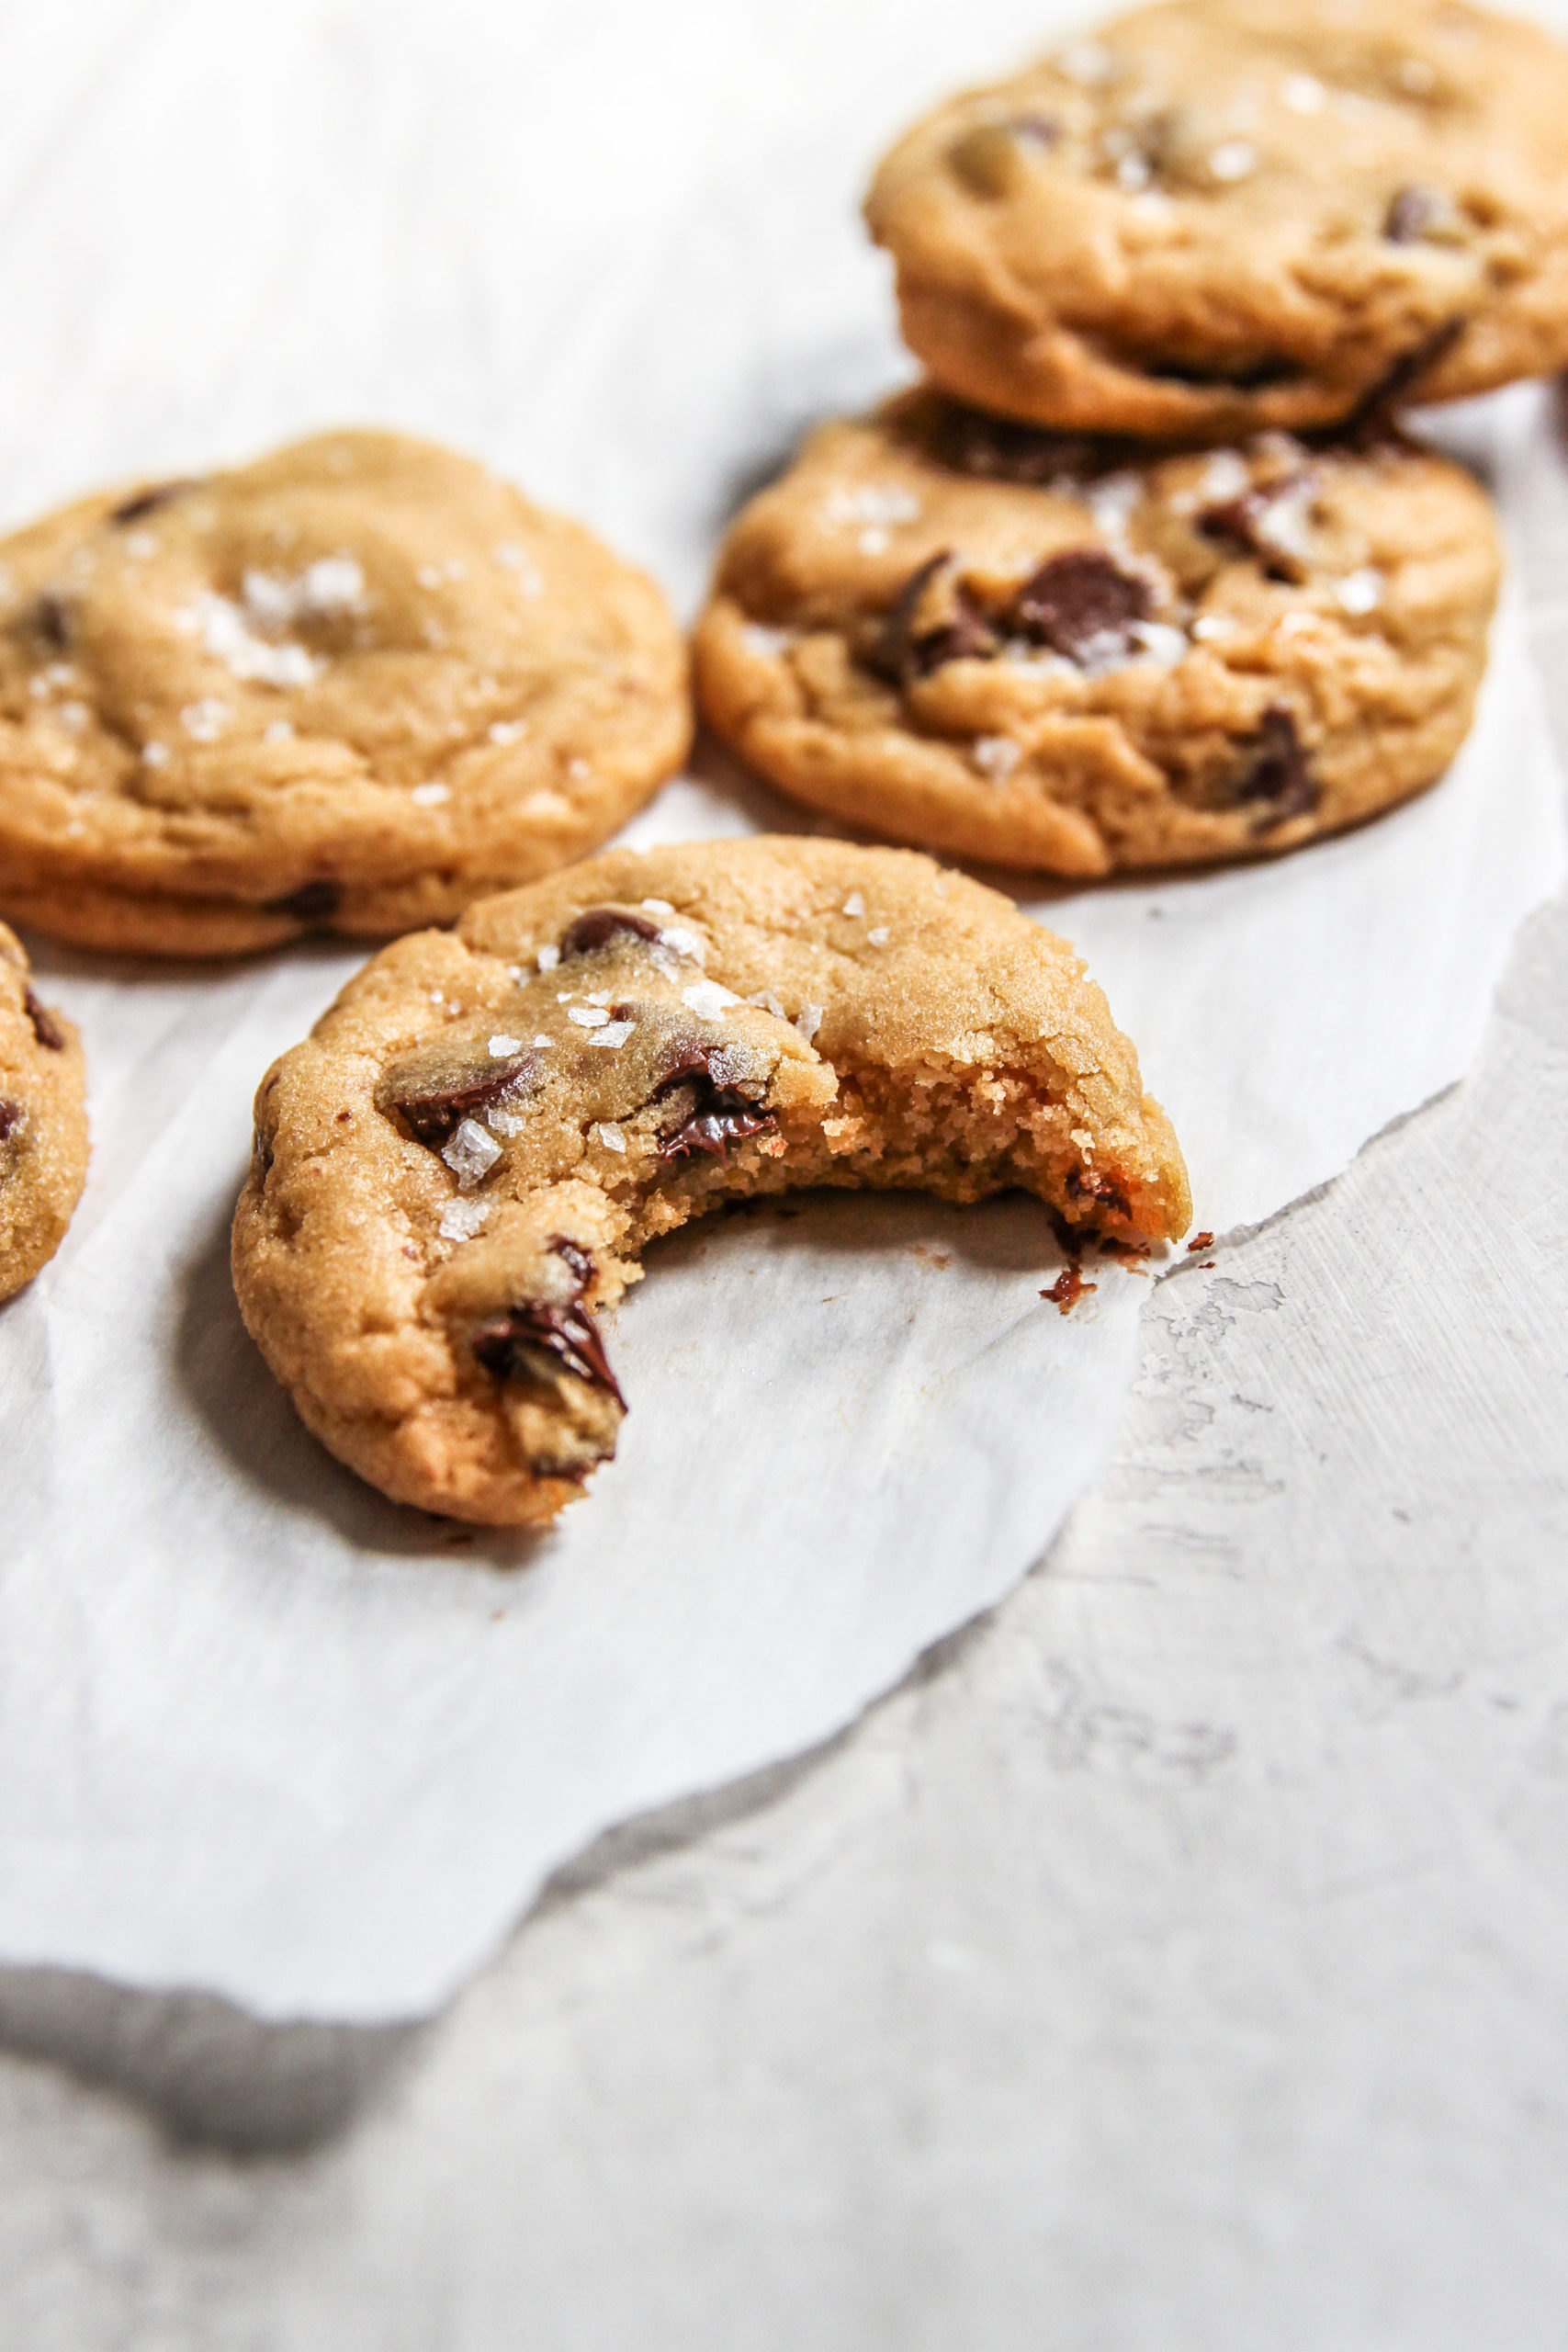 The best recipe to make chocolate chip cookies with salted caramel